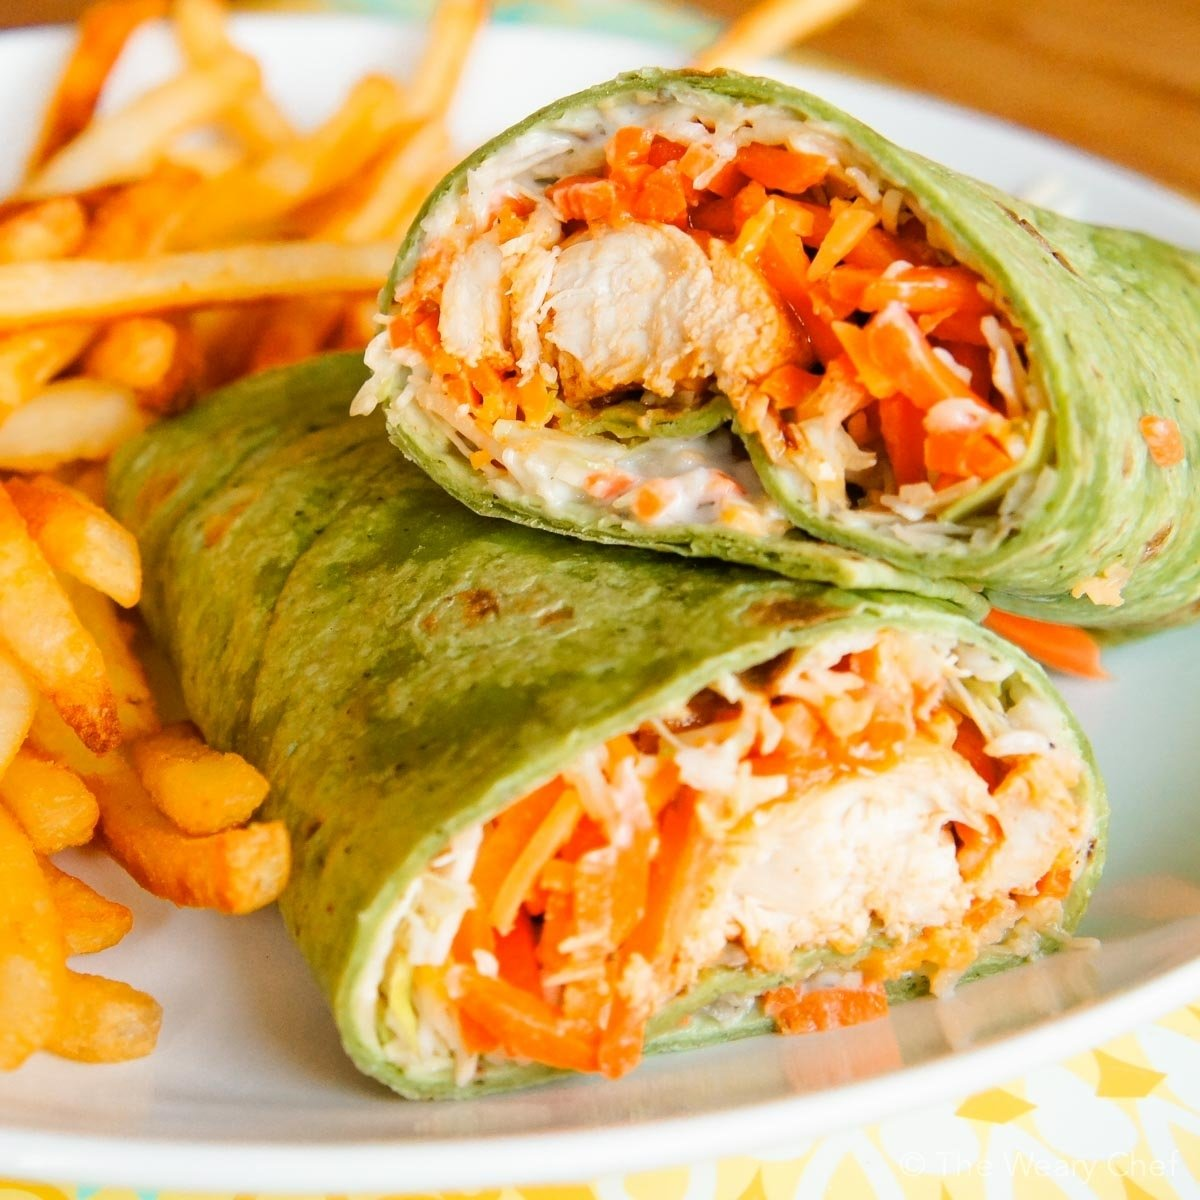 10 Attractive Easy Dinner Ideas With Chicken buffalo chicken wraps a fun and tasty dinner idea the weary chef 11 2020